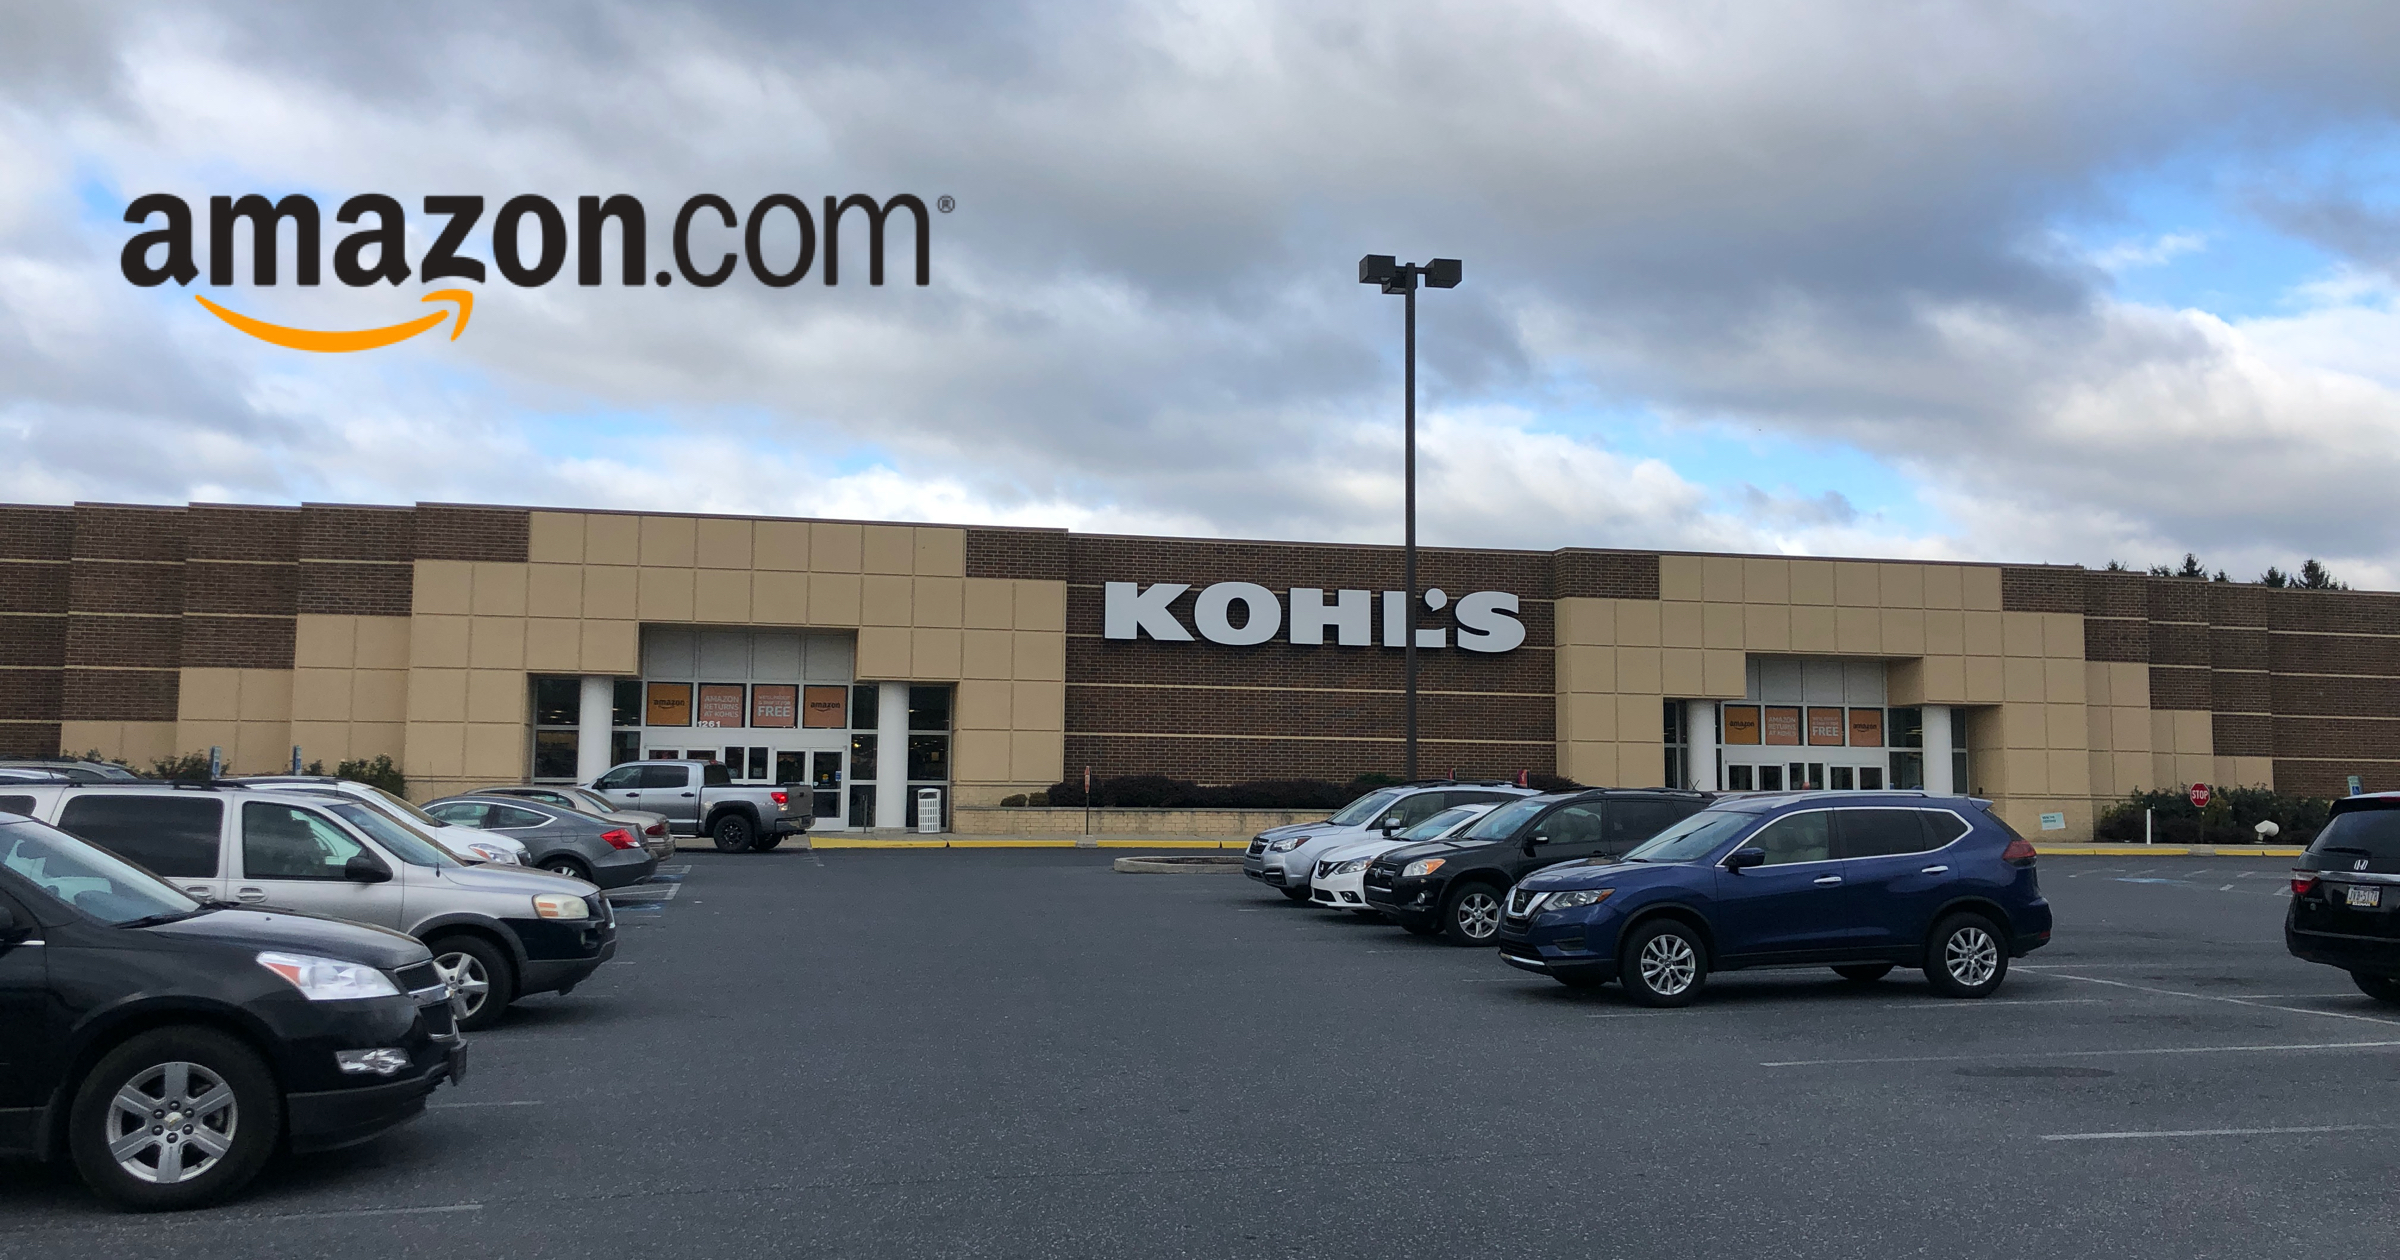 You can now return Amazon purchases at Kohl's, and it's actually very nice